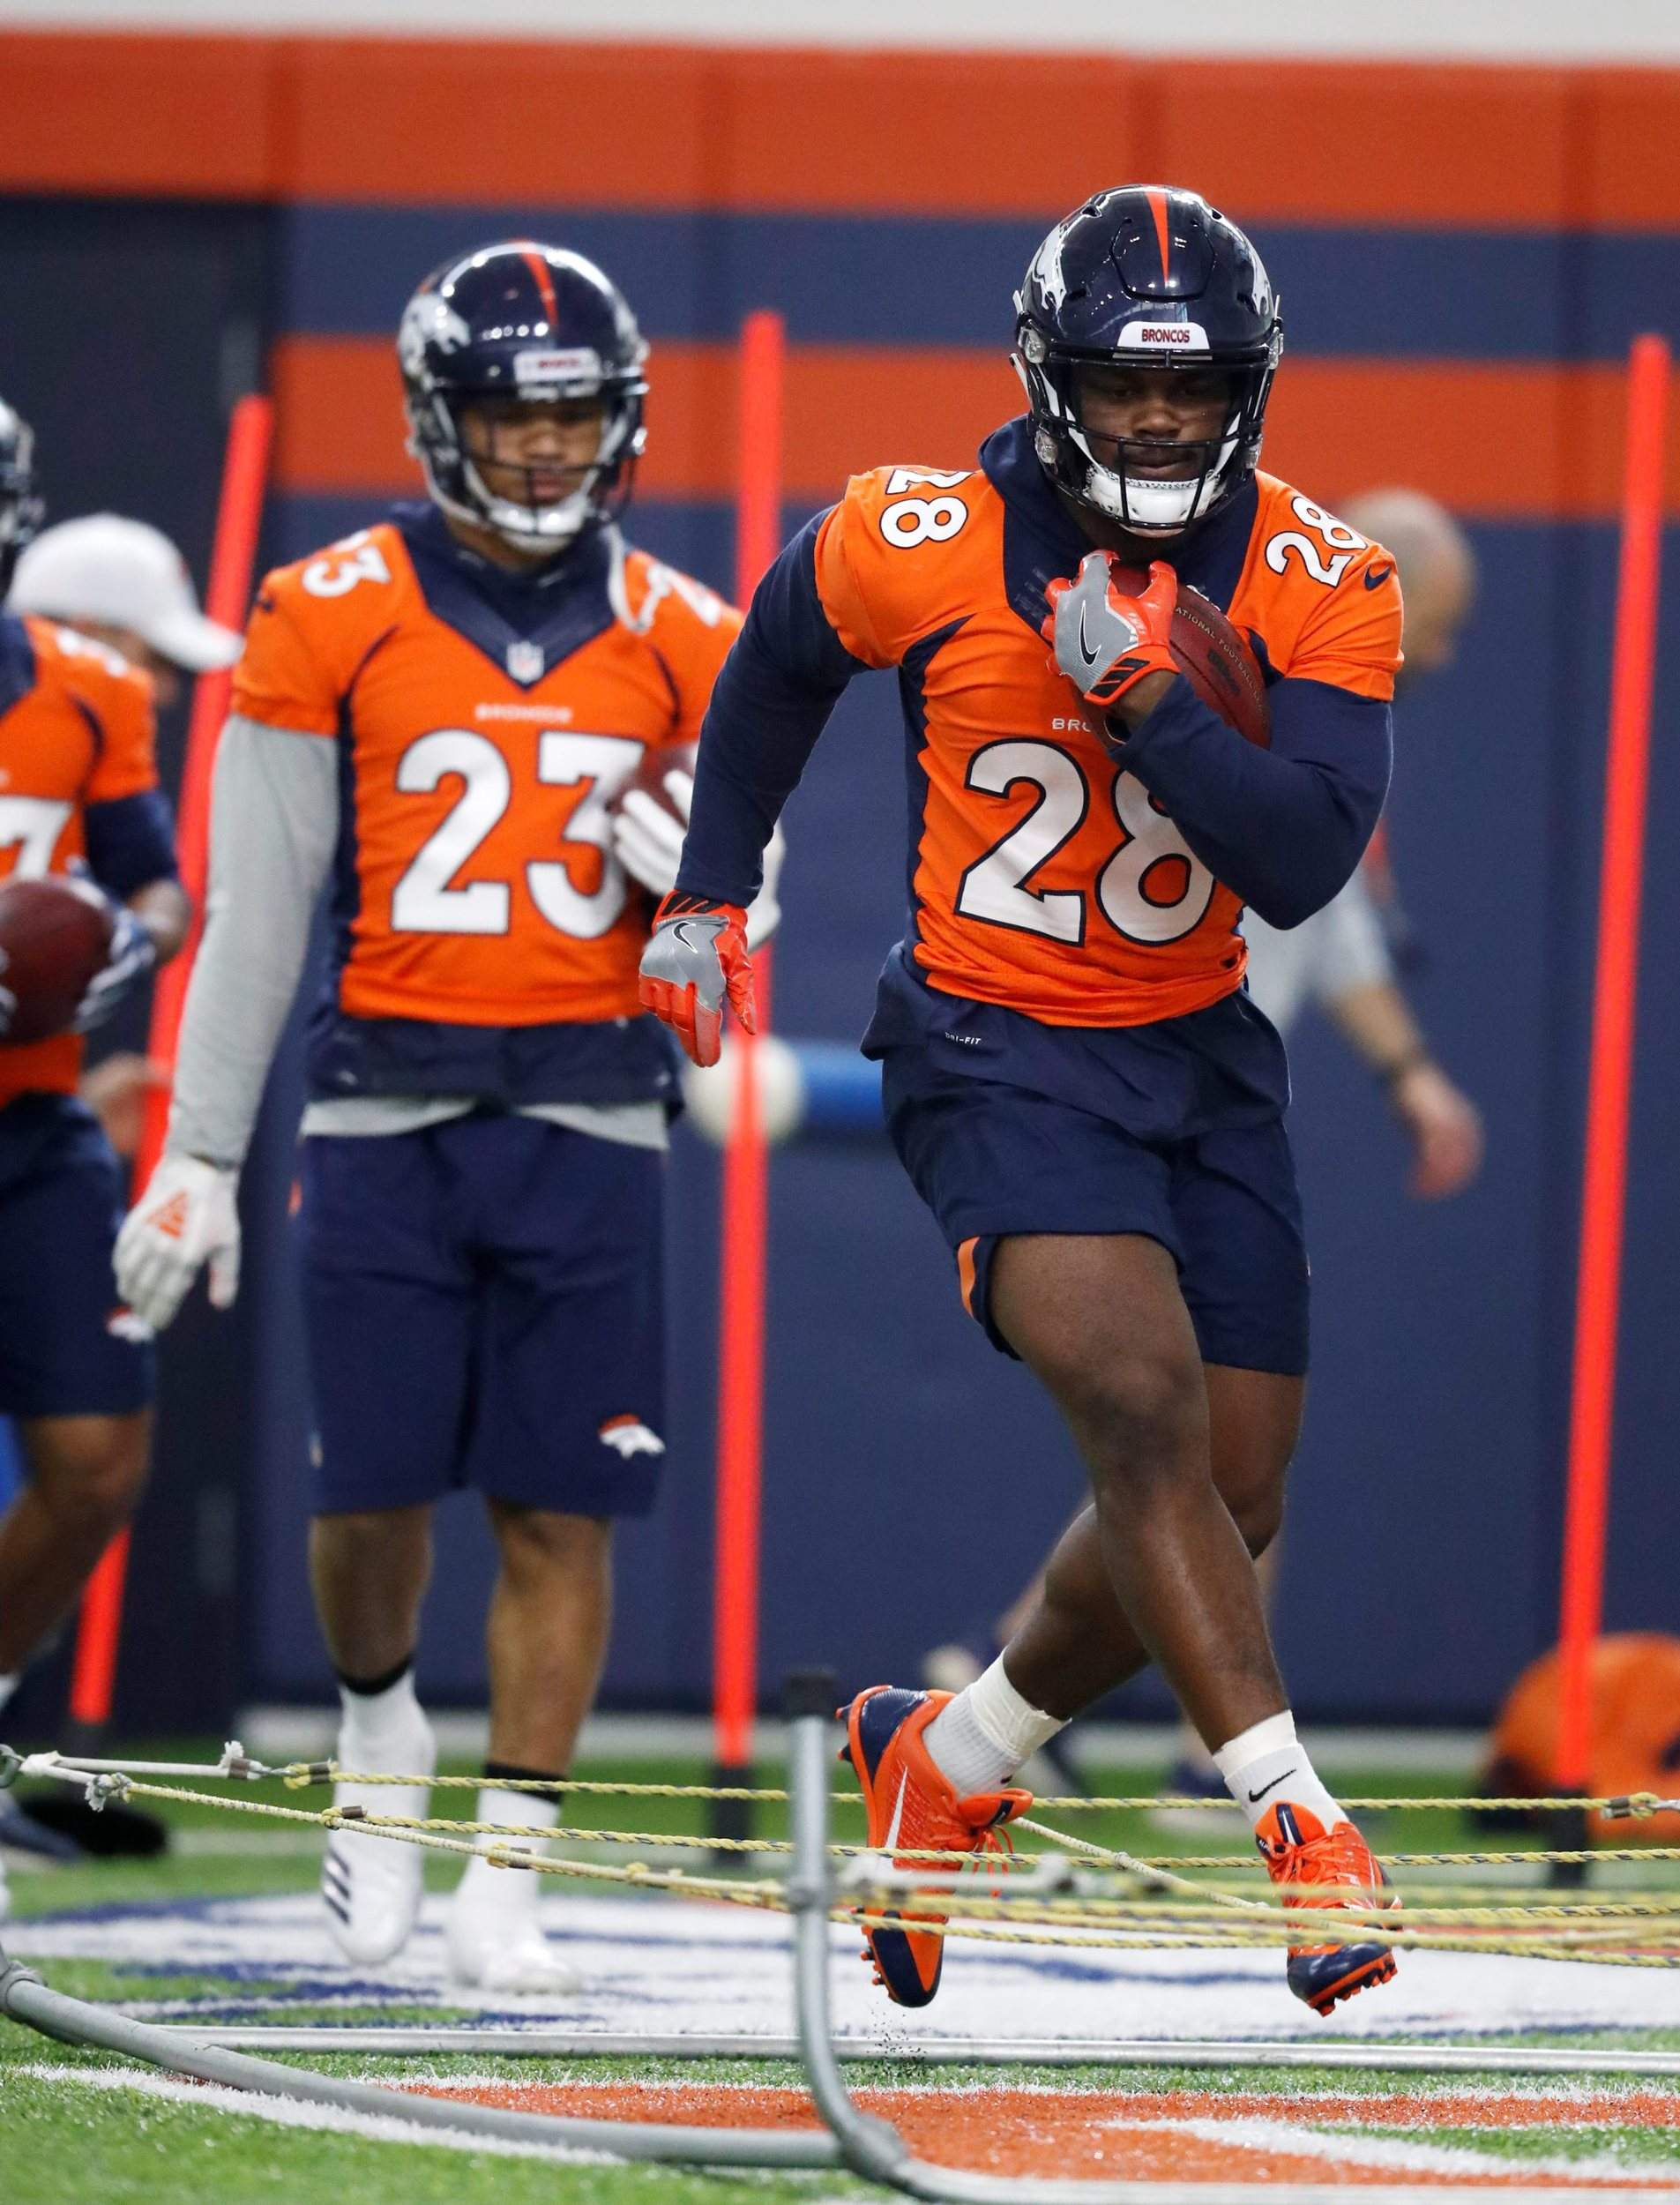 de38064a609 Denver Broncos running back Royce Freeman takes part in drills during the  team's veterans minicamp Tuesday in Englewood.